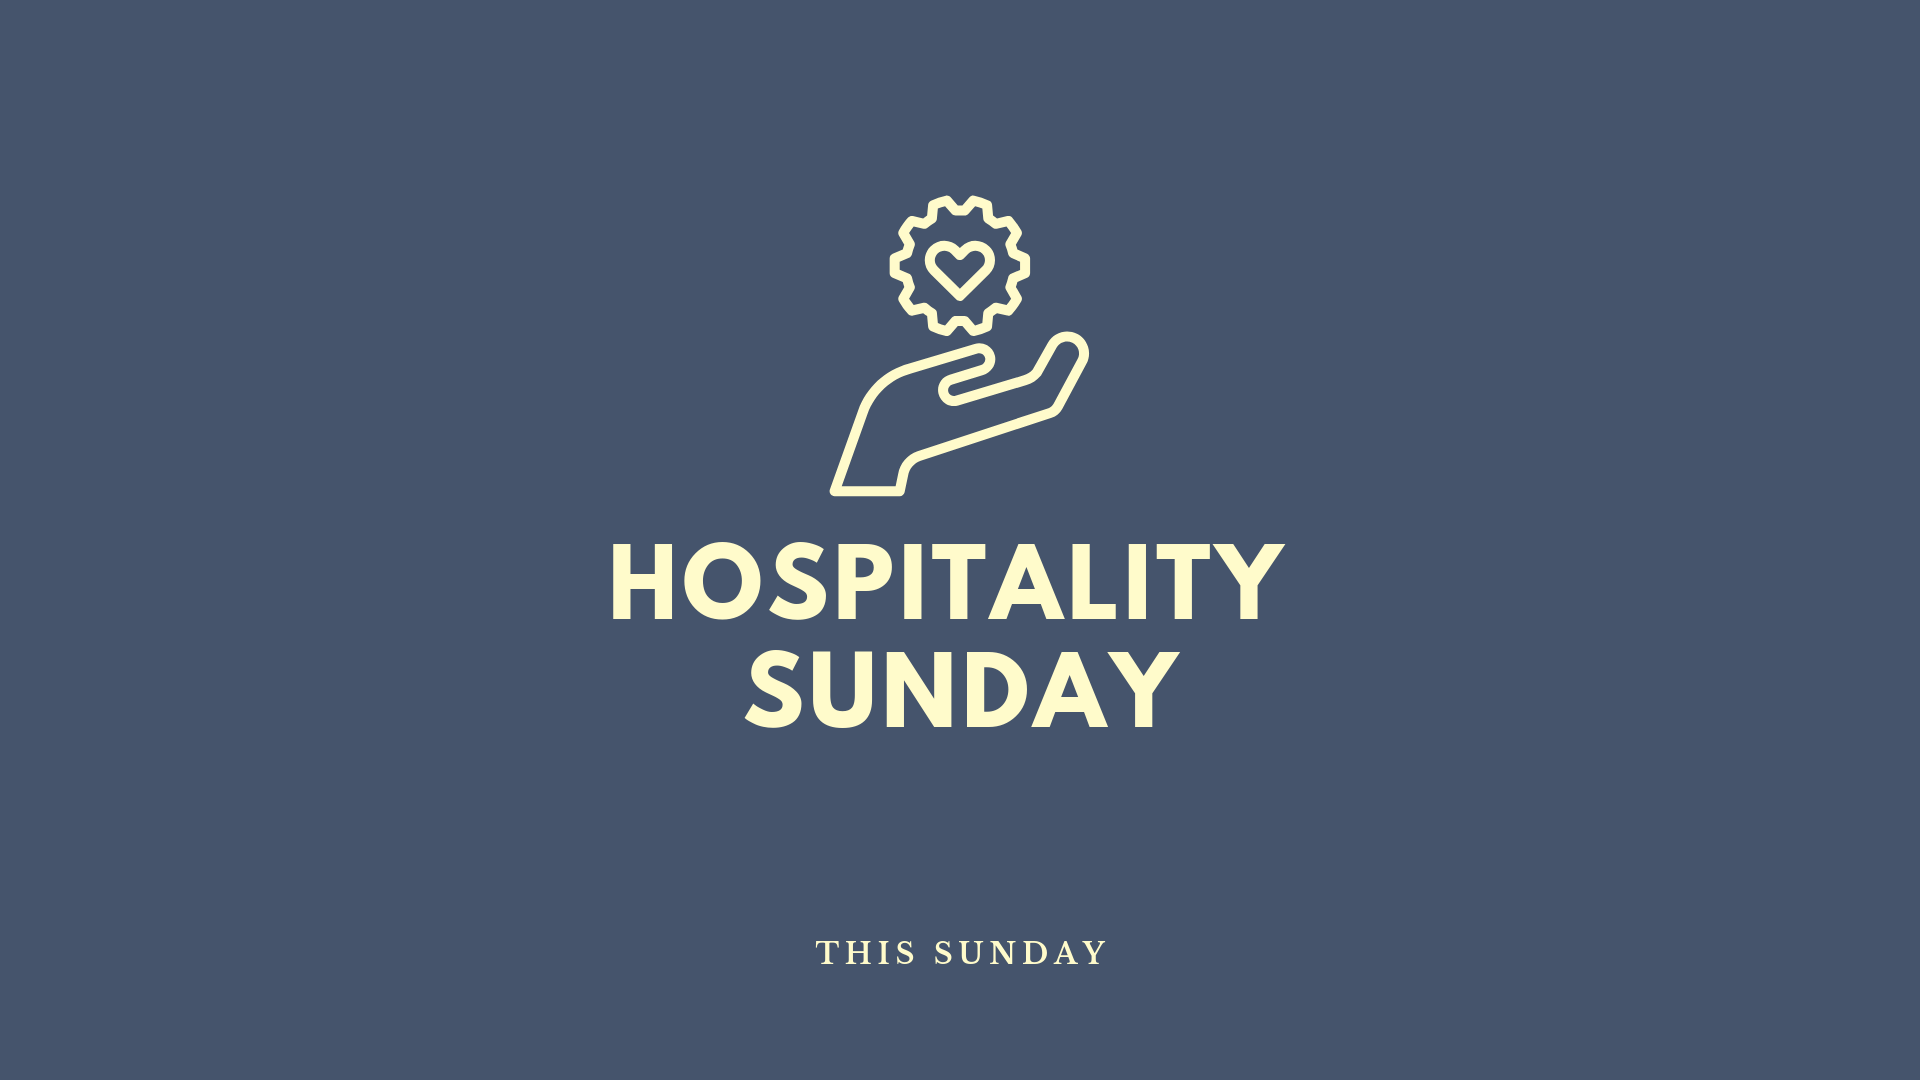 Copy of Hospitality SUnday.png